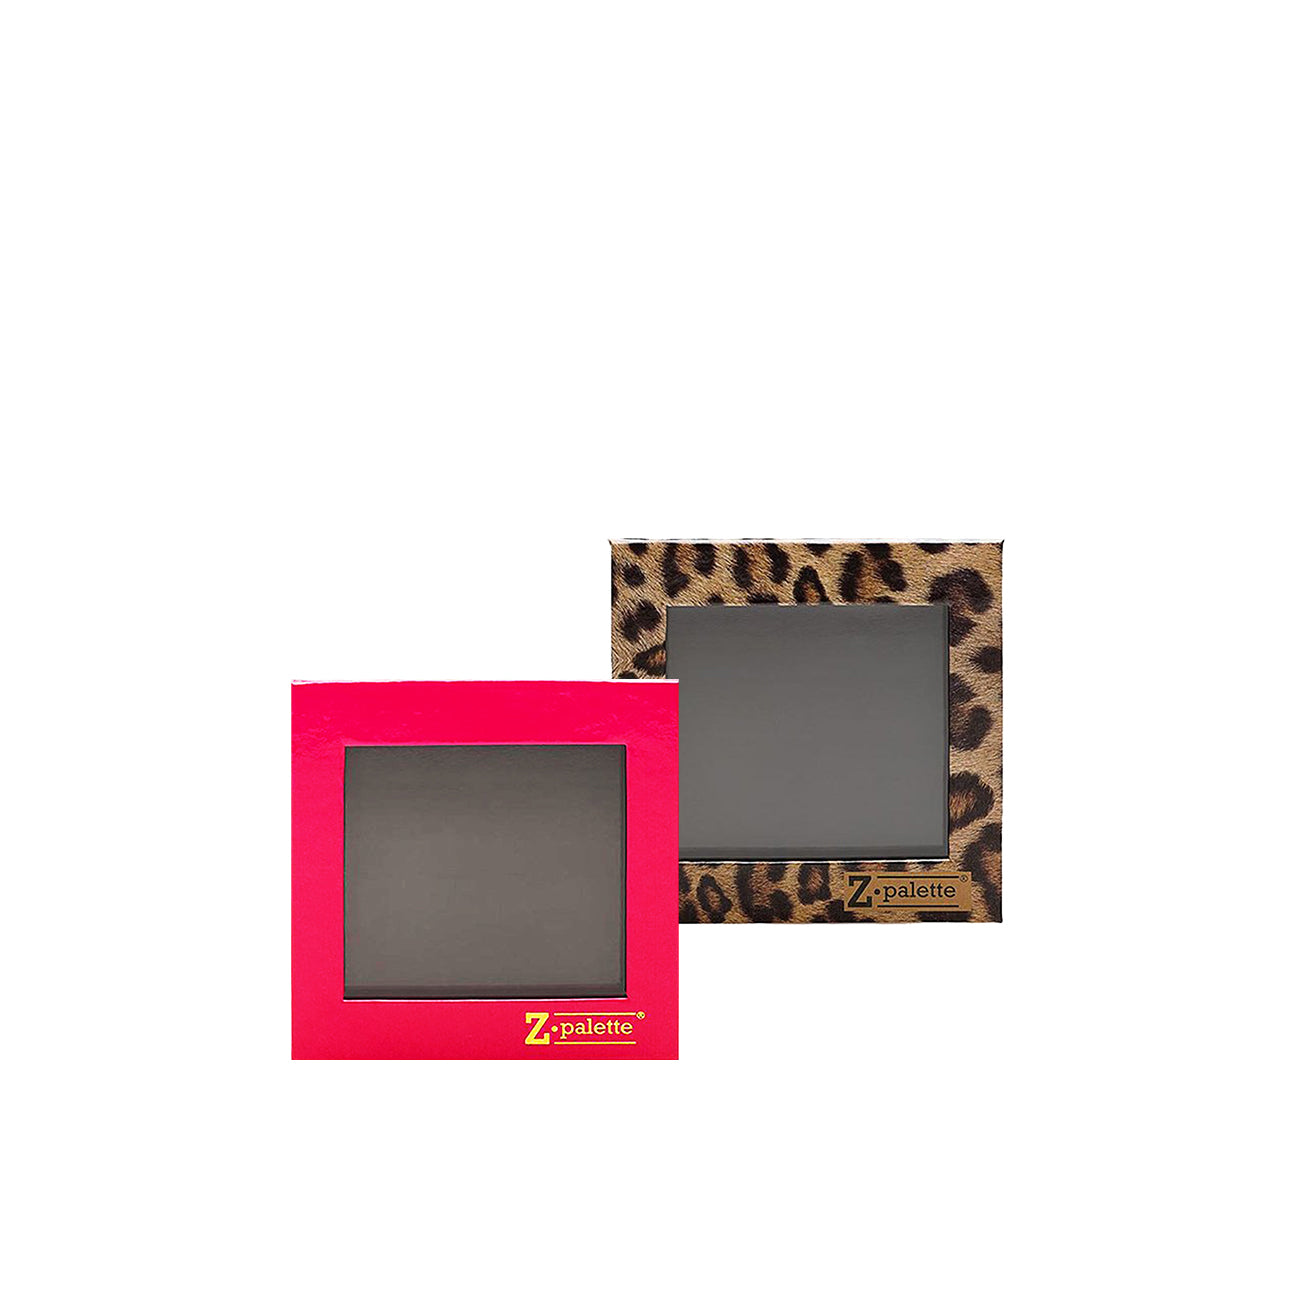 SMALL HOT PINK & SMALL LEOPARD Z PALETTES